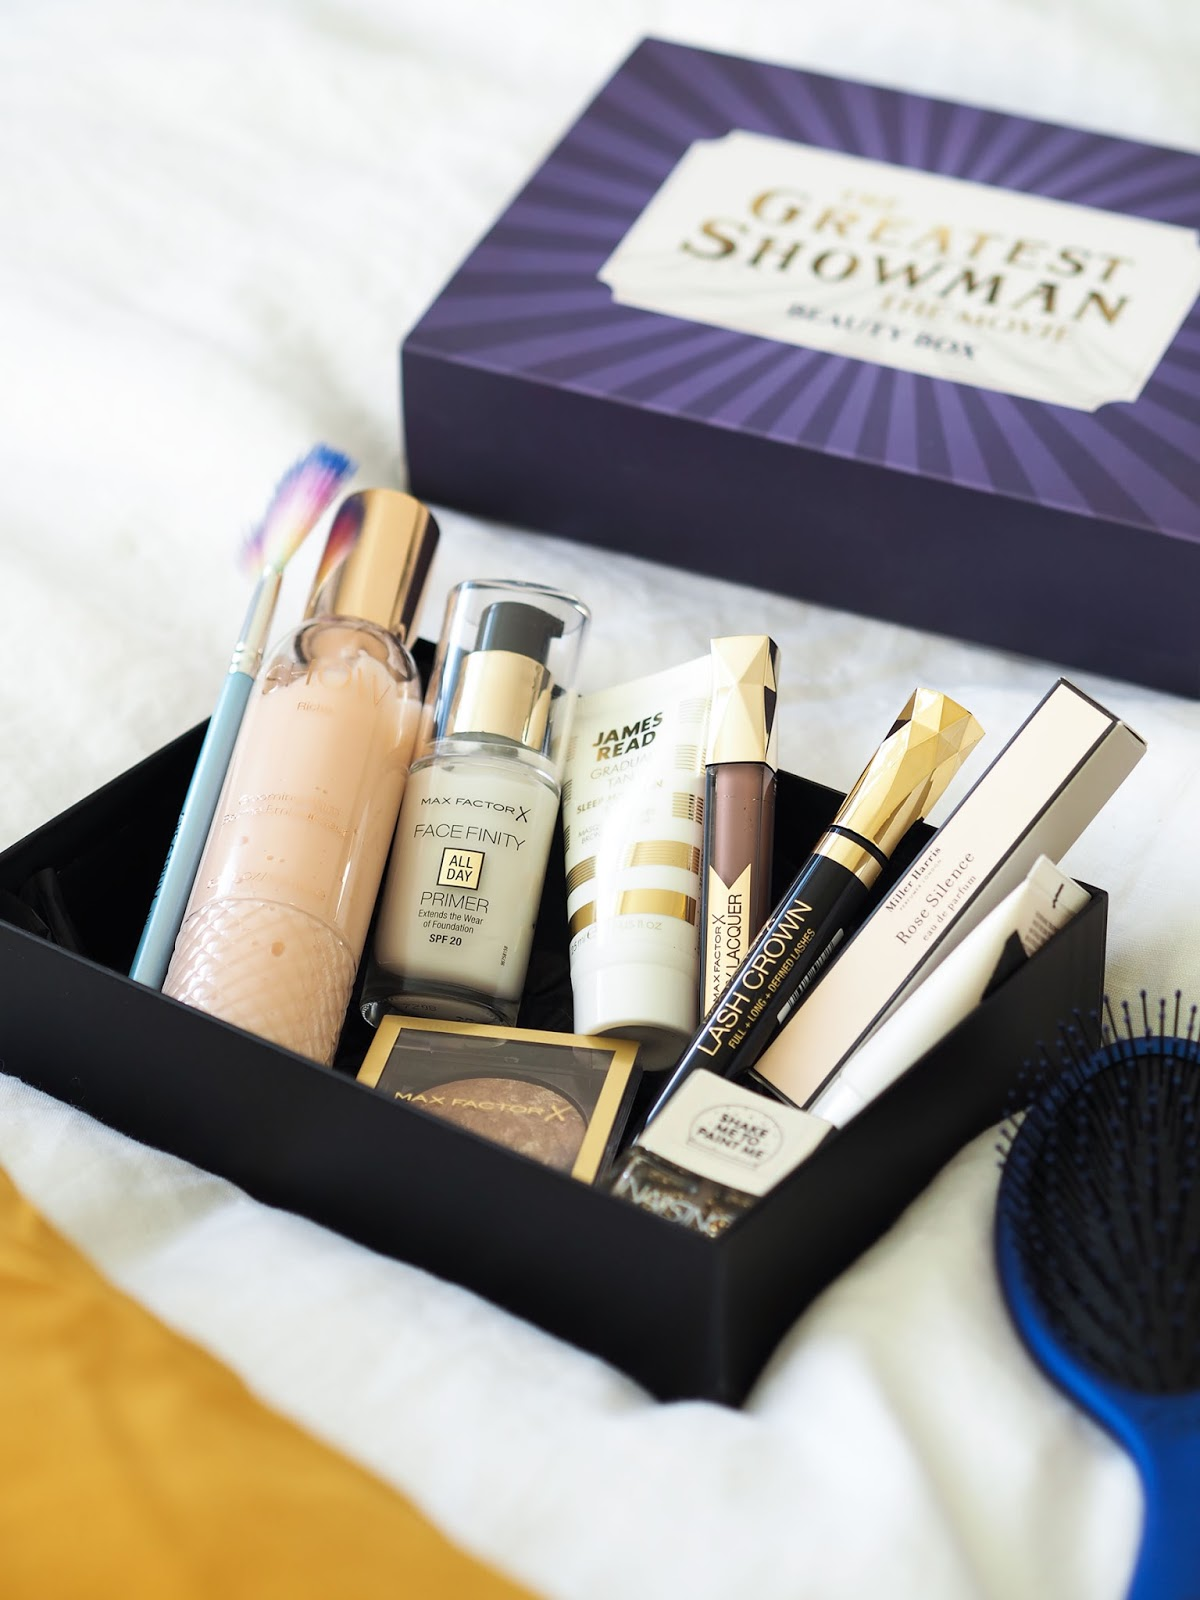 The Greatest Showman Latest In Beauty Box